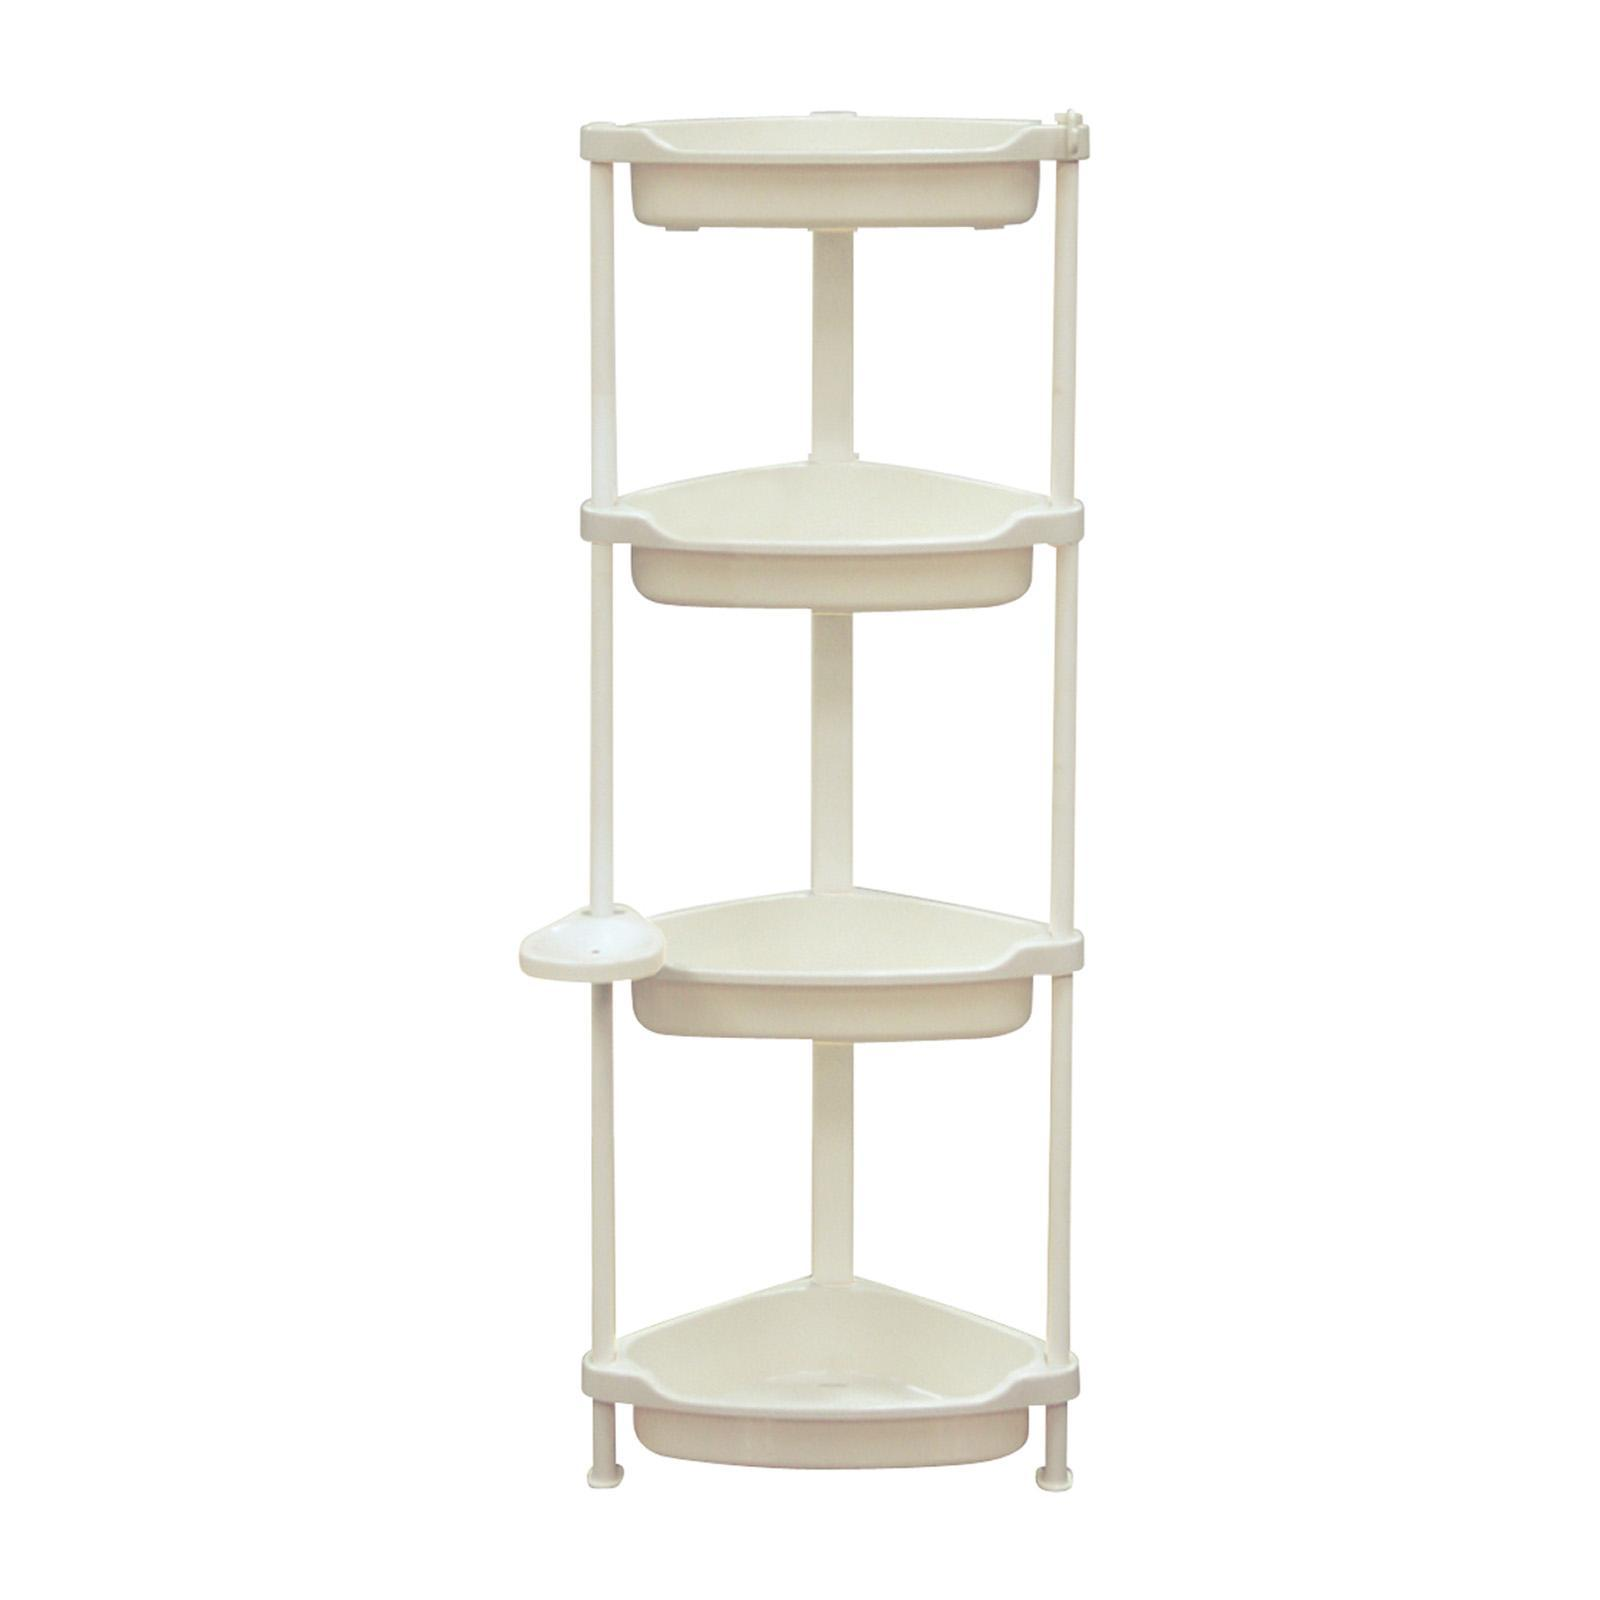 Algo Corner Bath Rack 3 Tier